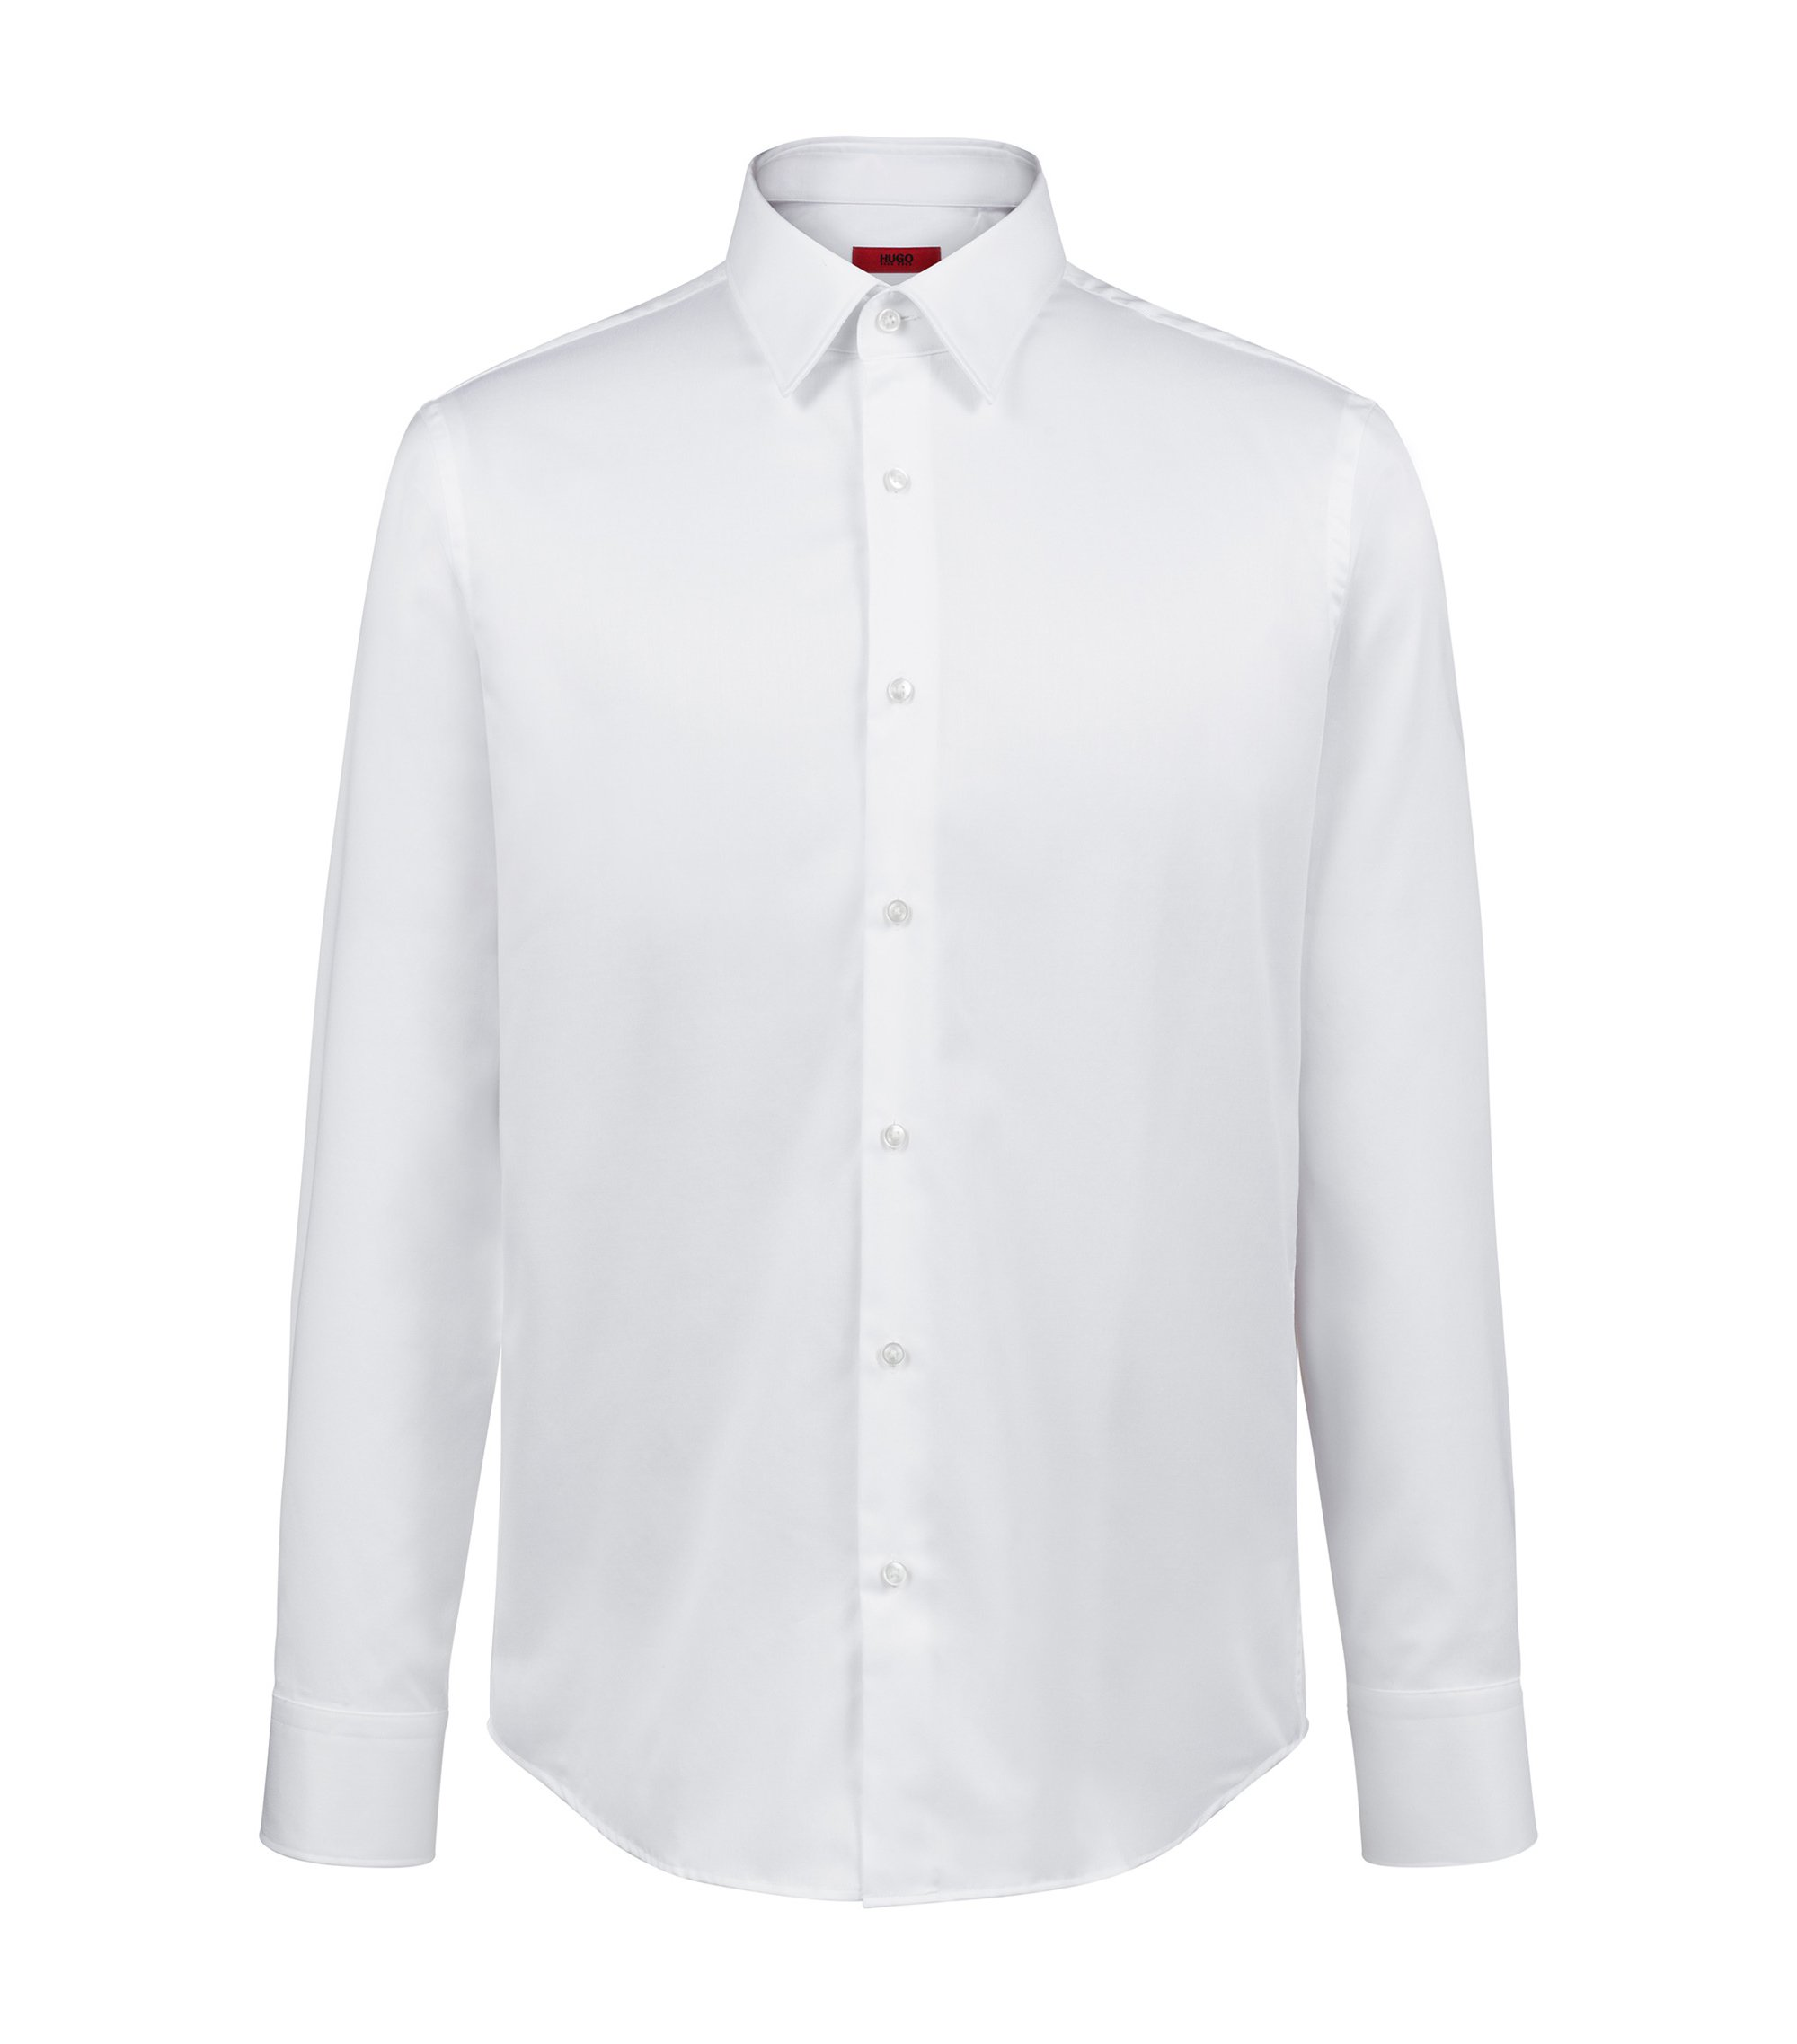 Camicia regular fit in twill di cotone a righe diagonali, Bianco